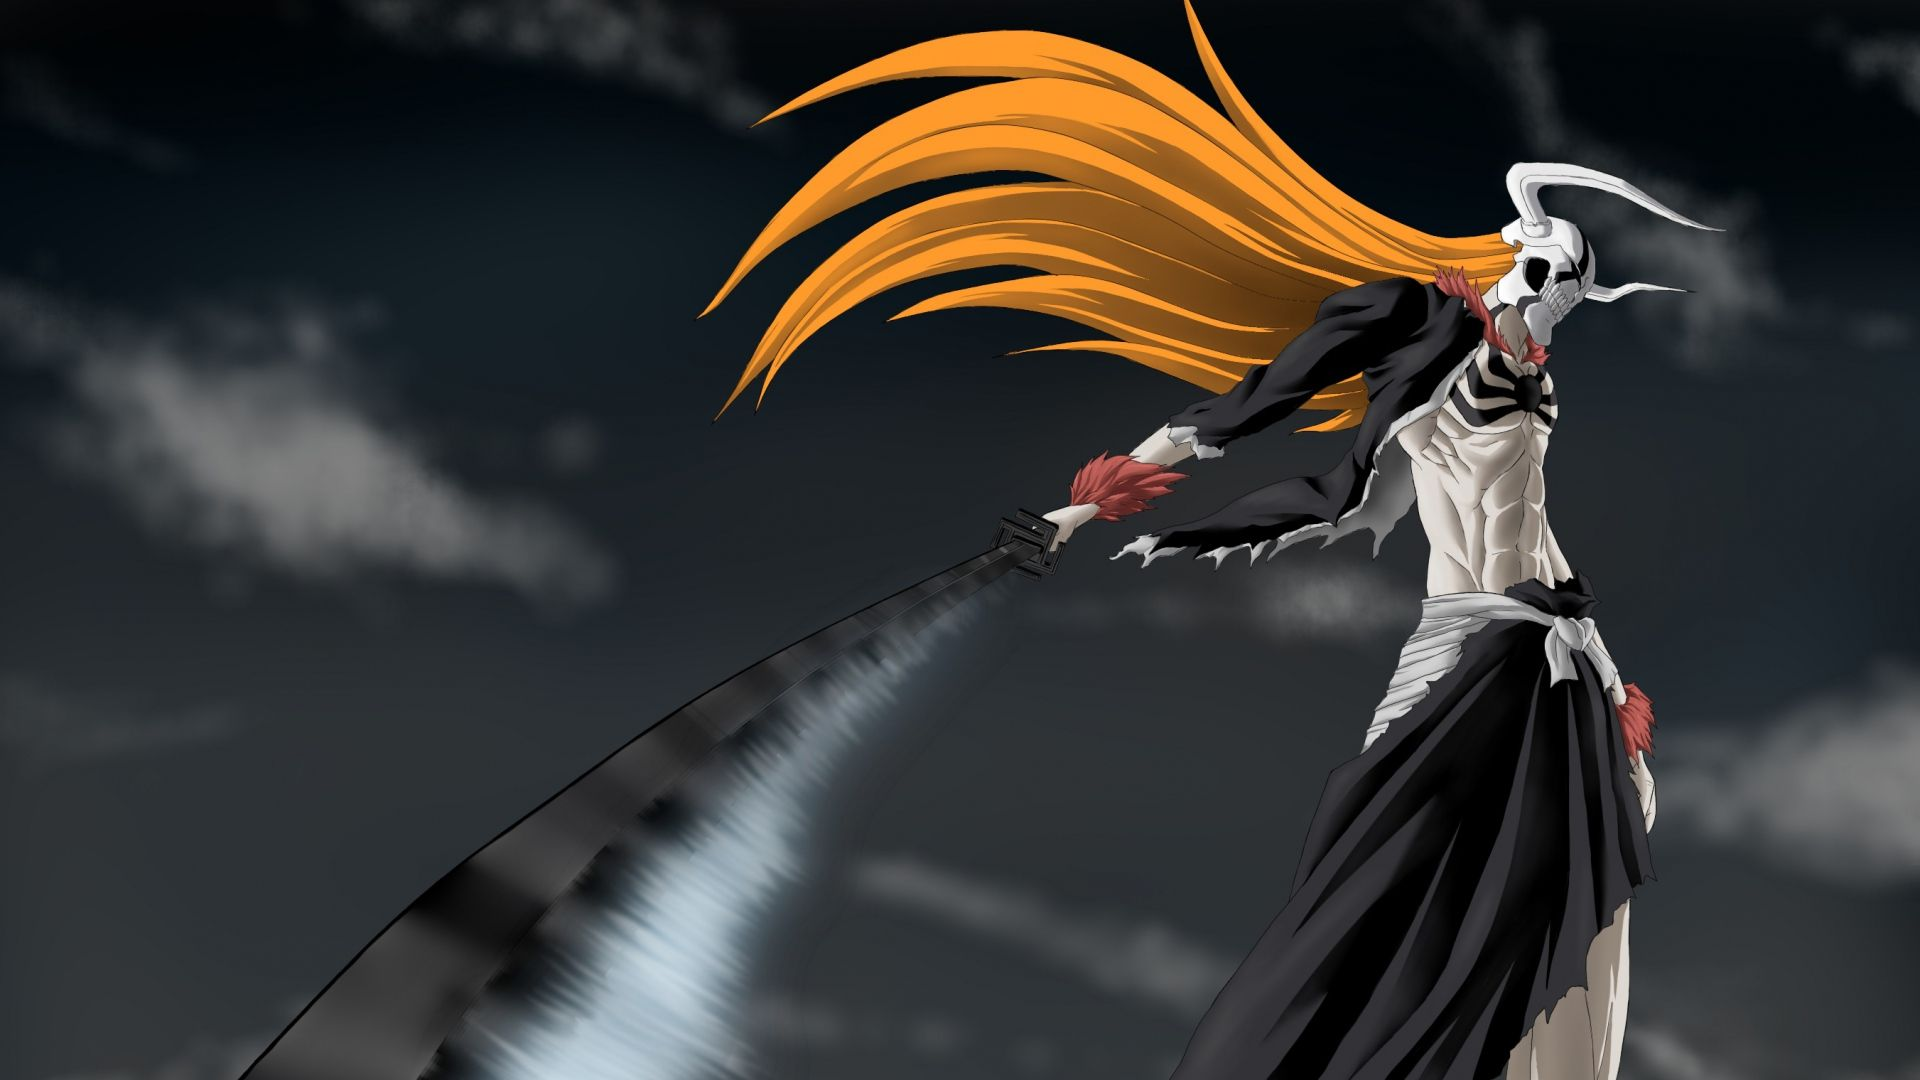 Anime bleach wallpapers HD backgrounds free. anime